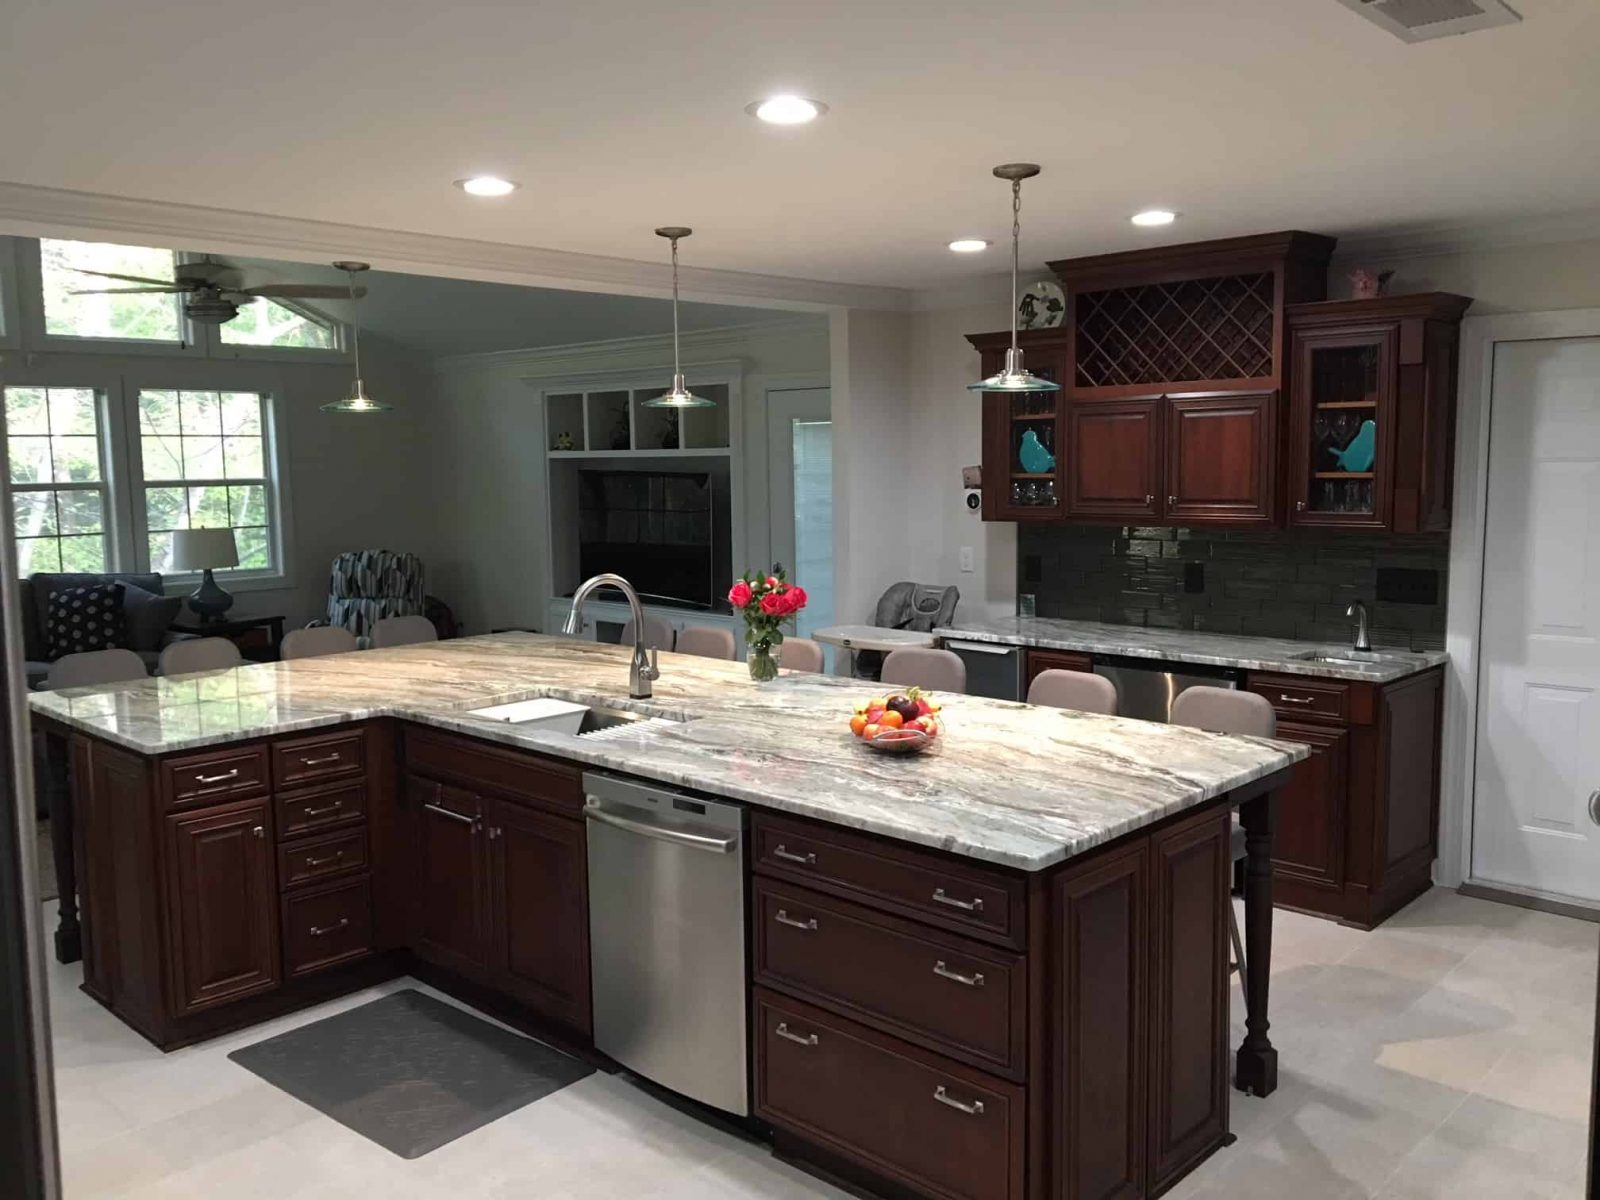 Latest Trends in Kitchen and Bathroom Remodeling » Better ...